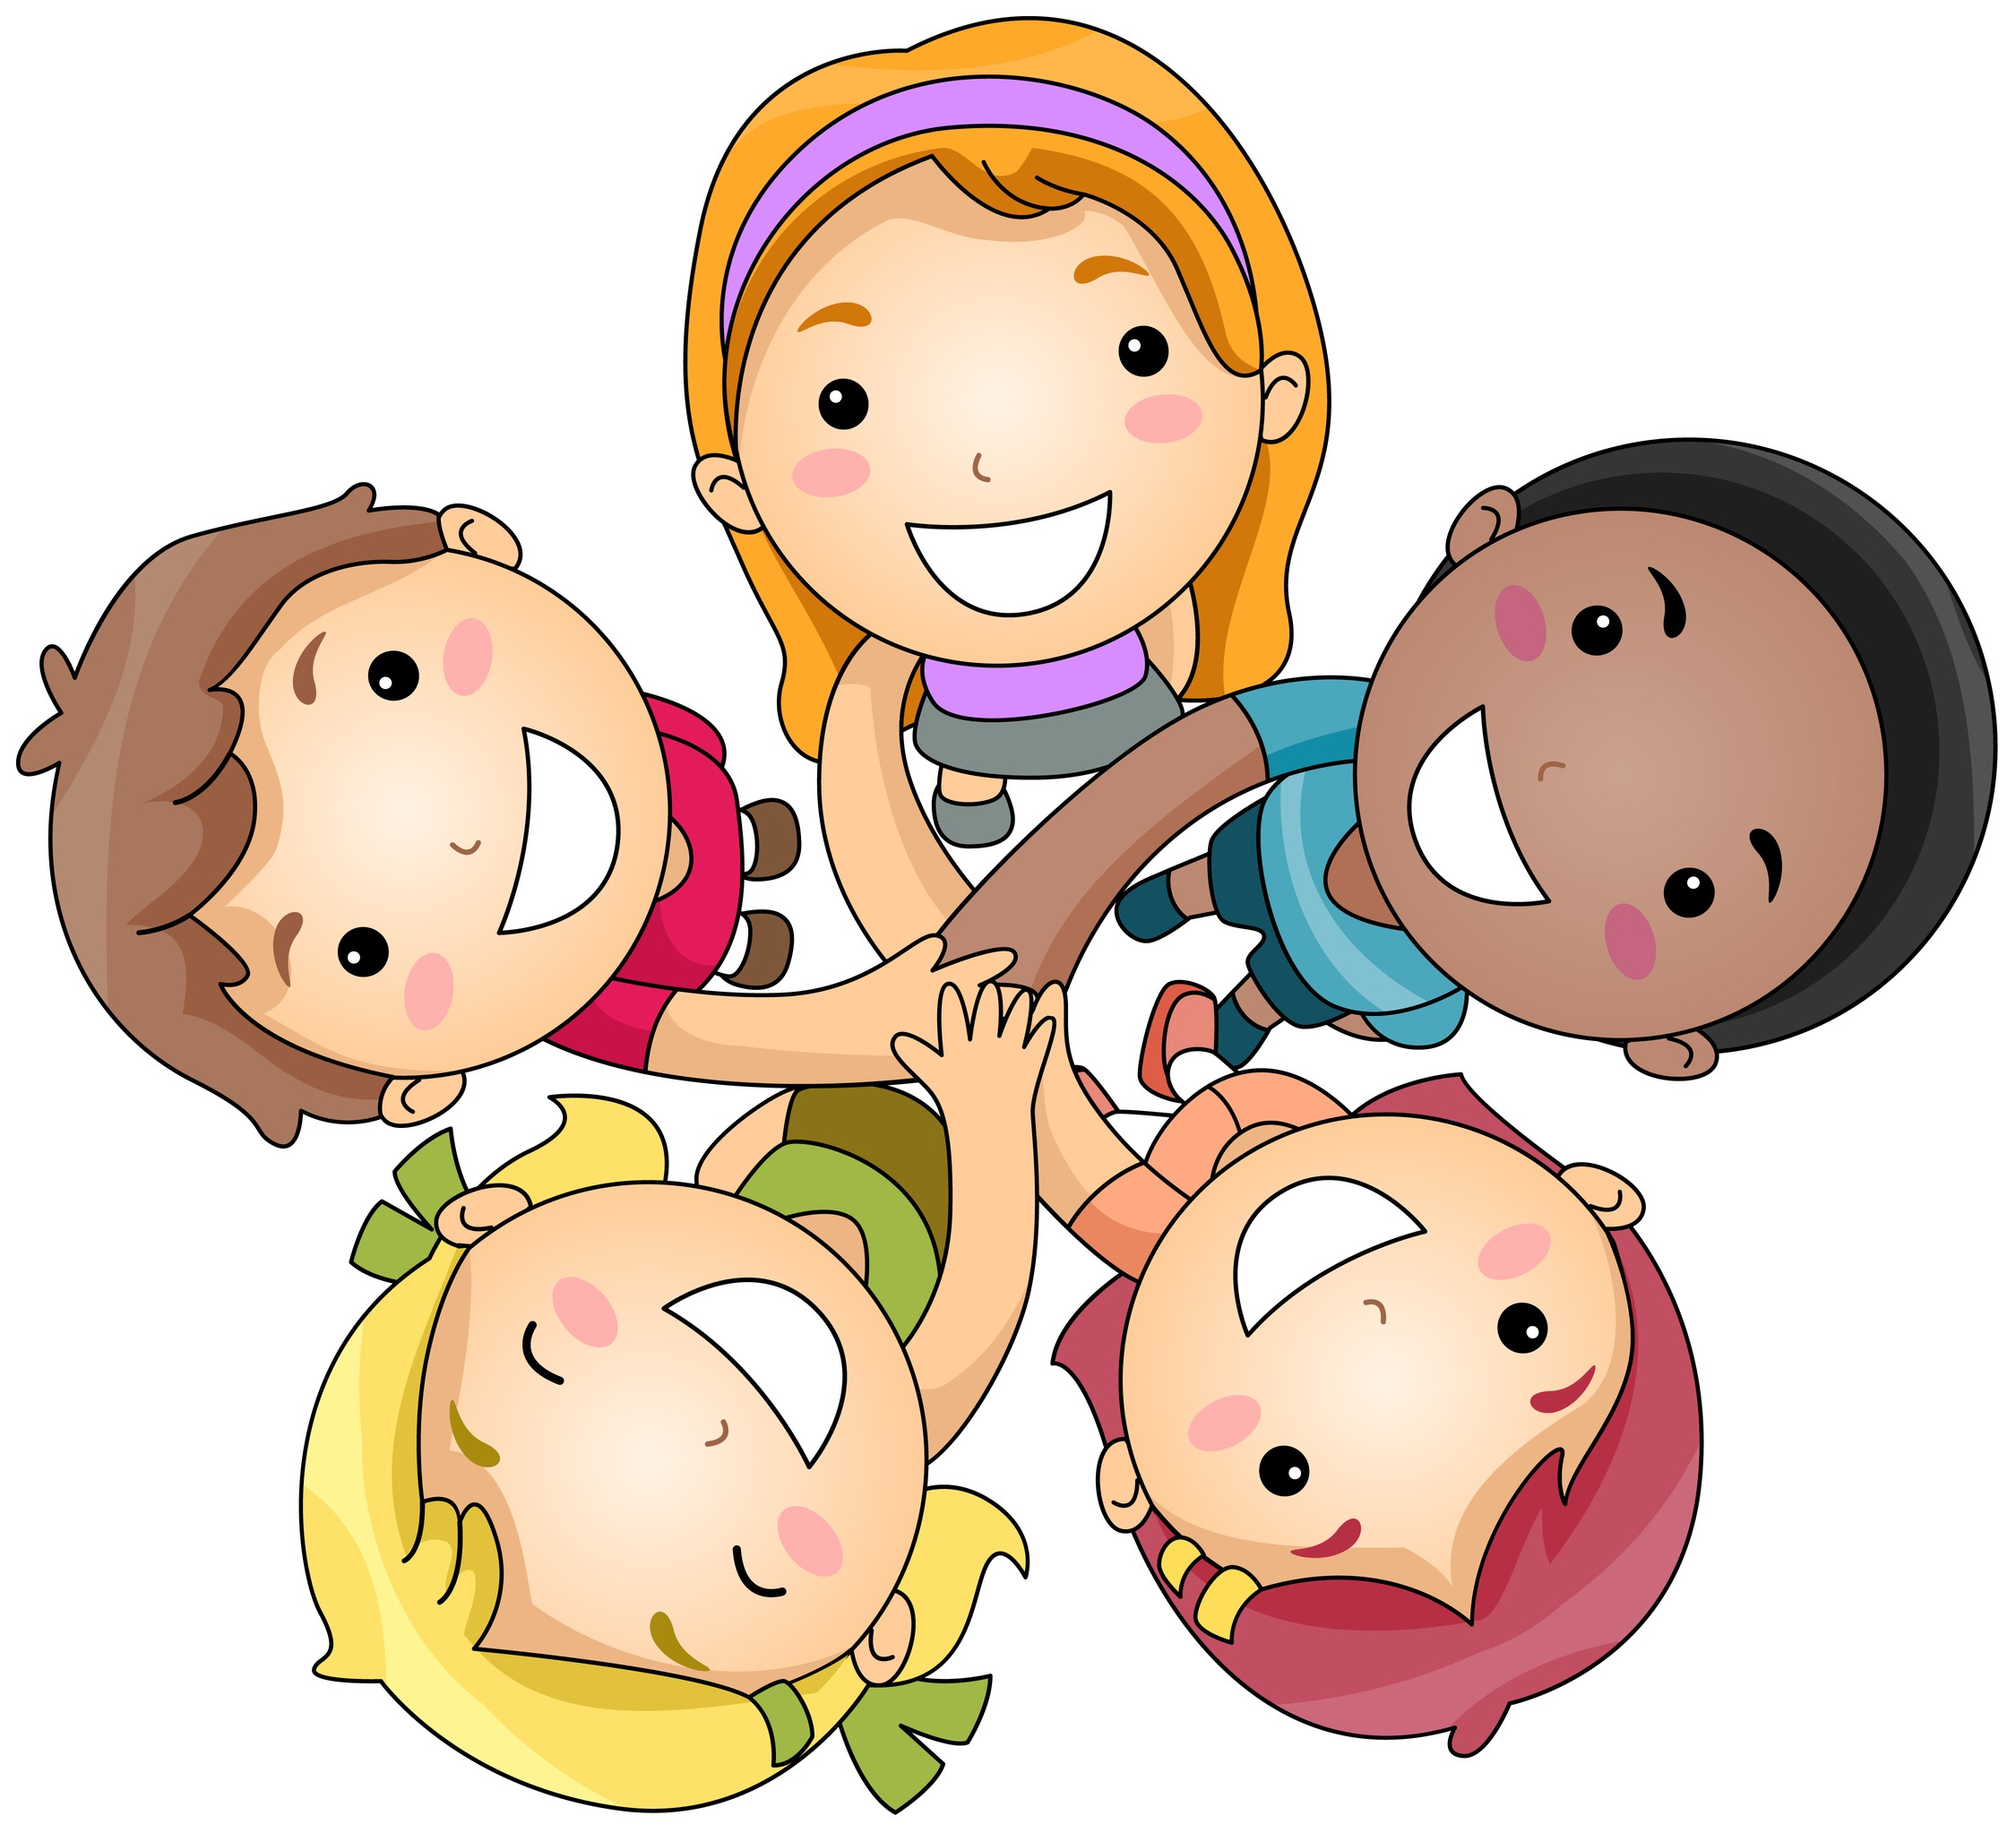 Clipart for child care image Free Child Care Pics, Download Free Clip Art, Free Clip Art on ... image